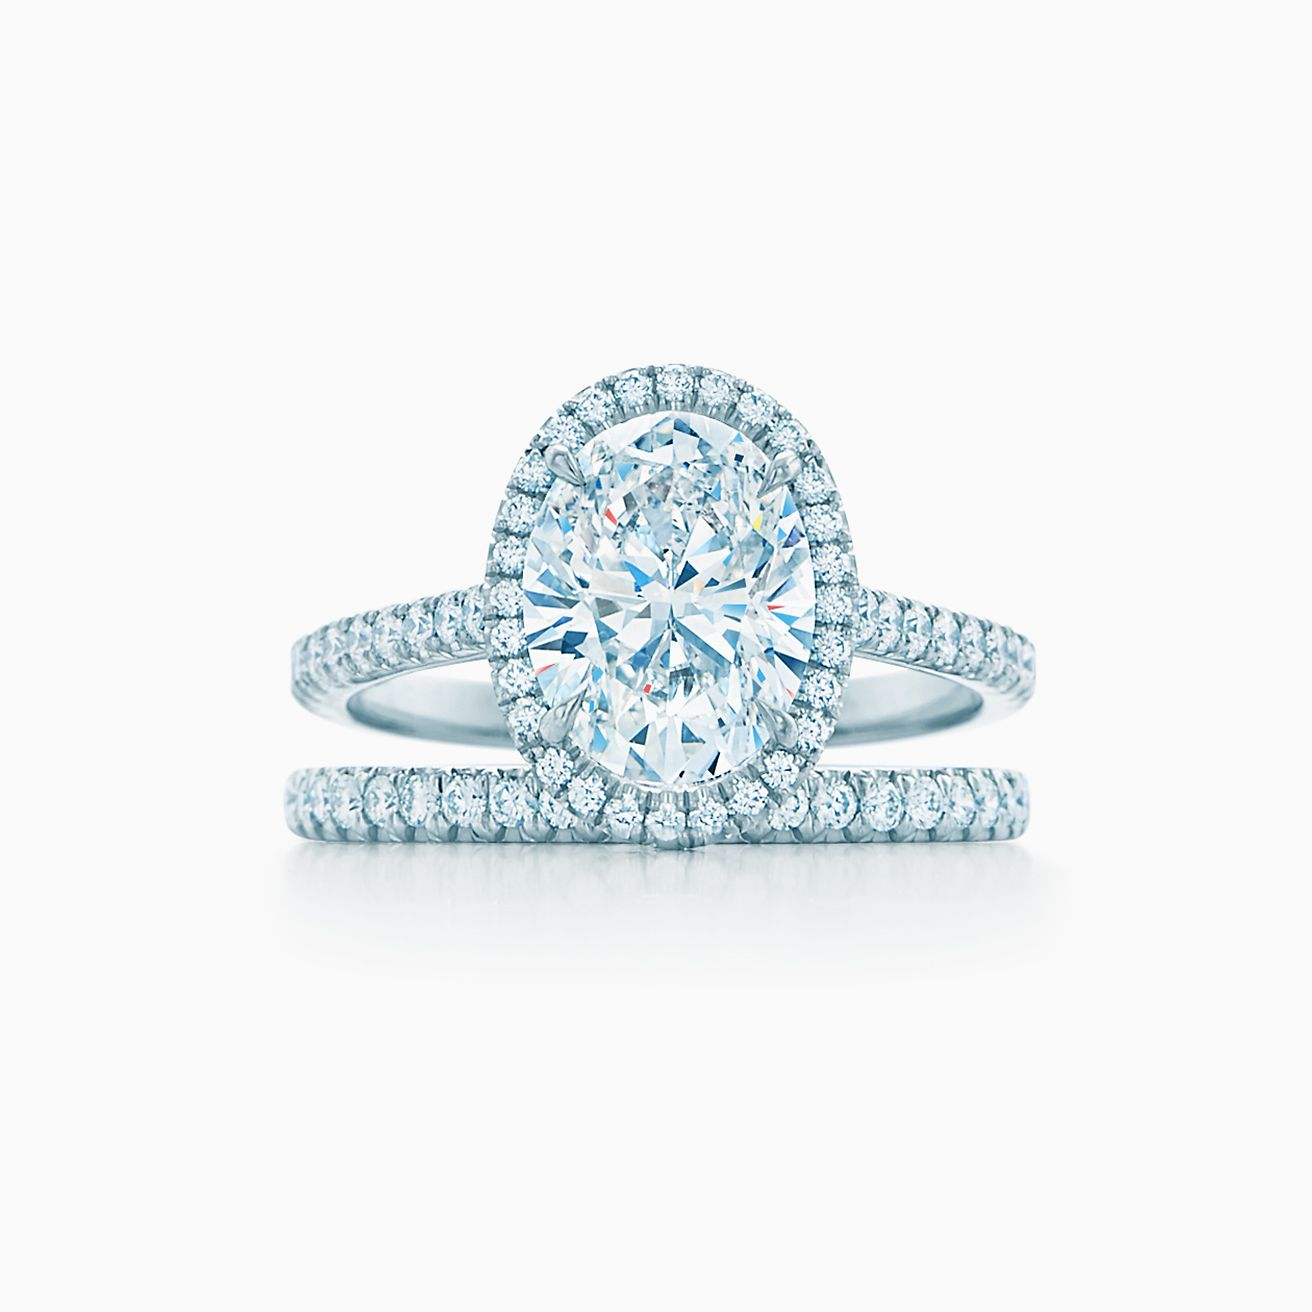 Tiffany Soleste 174 Oval Halo Engagement Ring With A Diamond